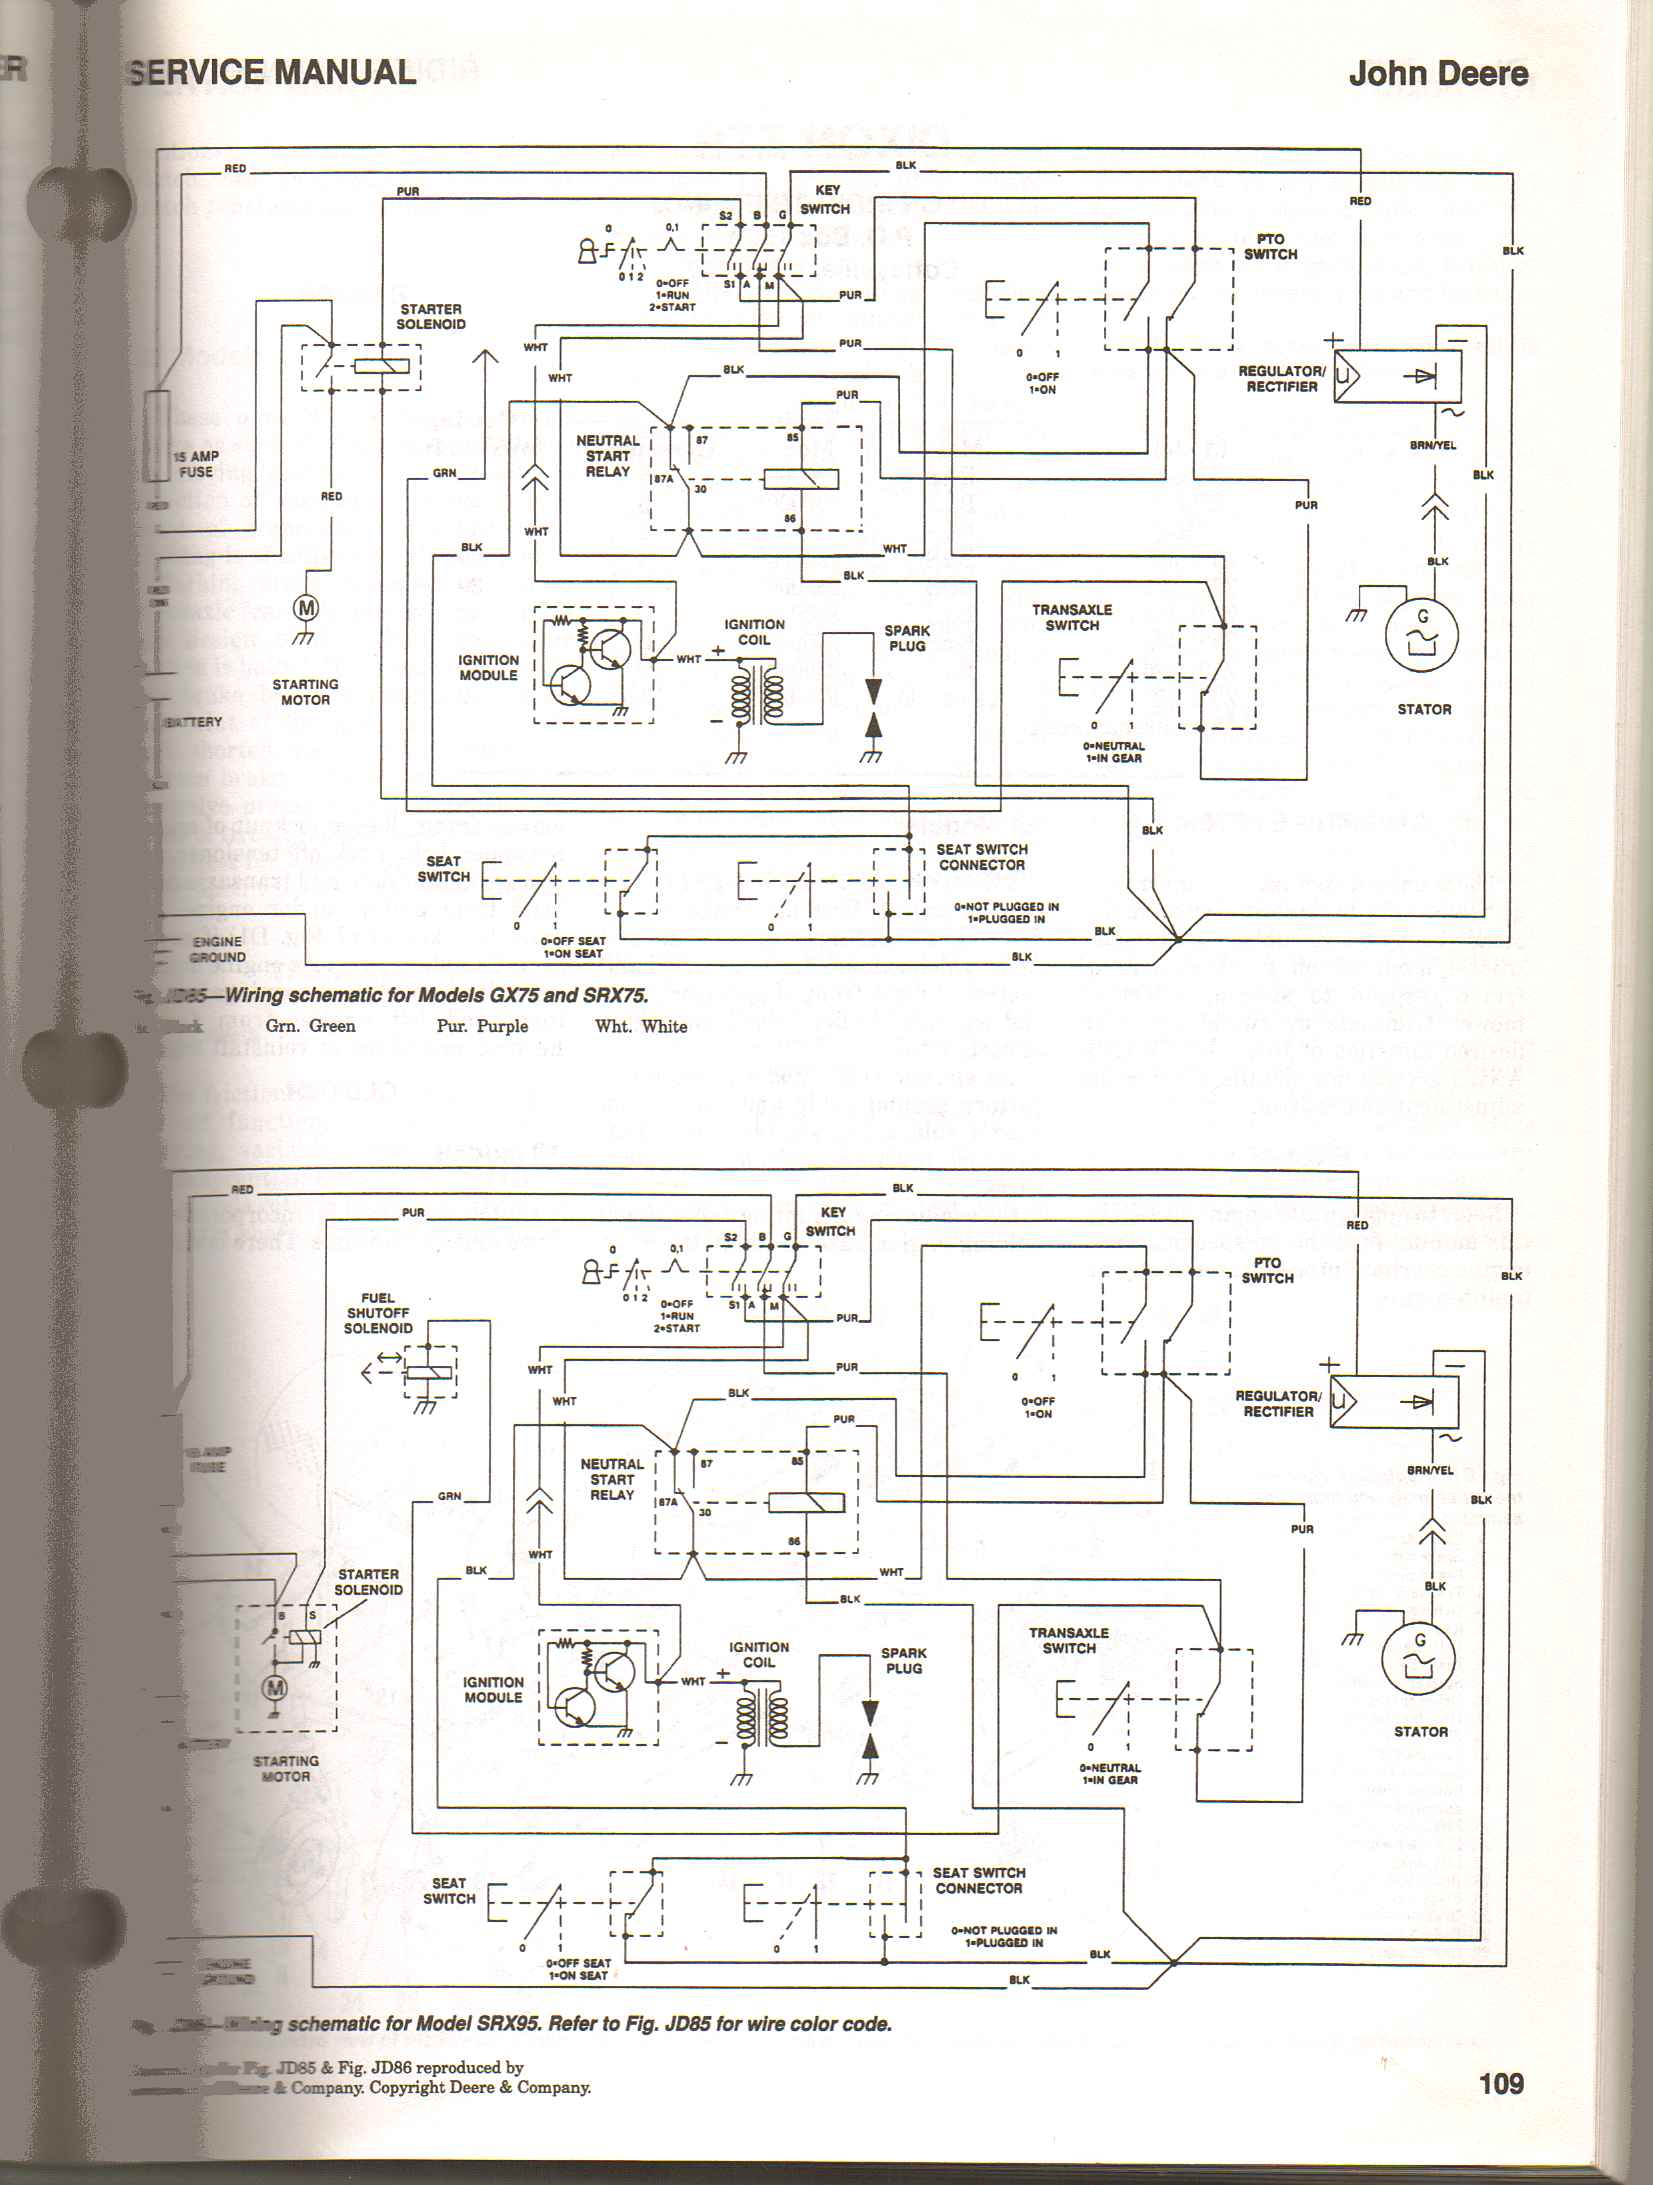 Wiring Diagram For John Deere 997 Z Trak F910 Gx85 Diy Diagrams